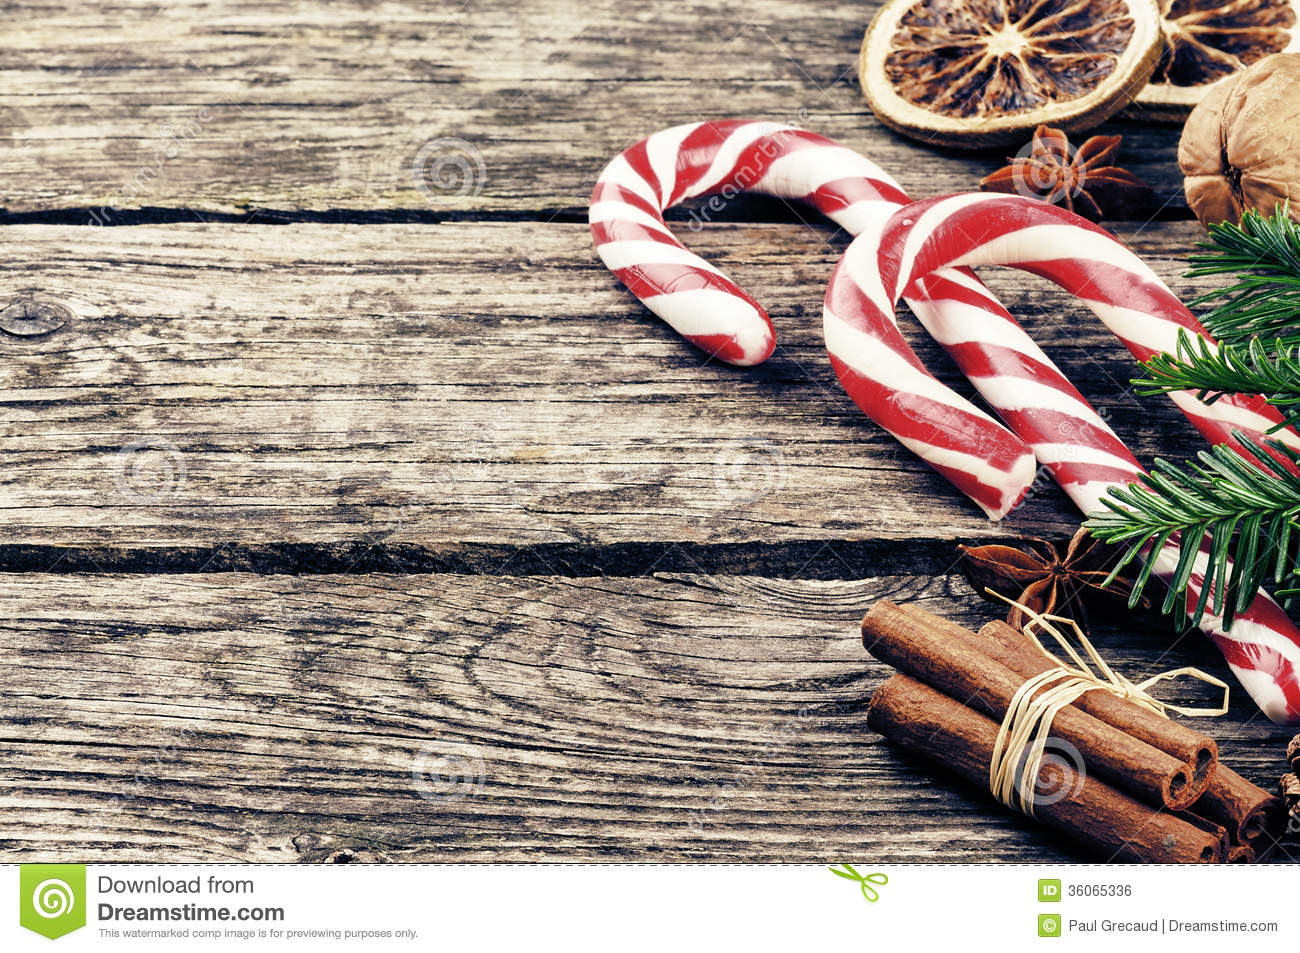 Vintage Christmas Decorations Stock Photo - Image: 36065336